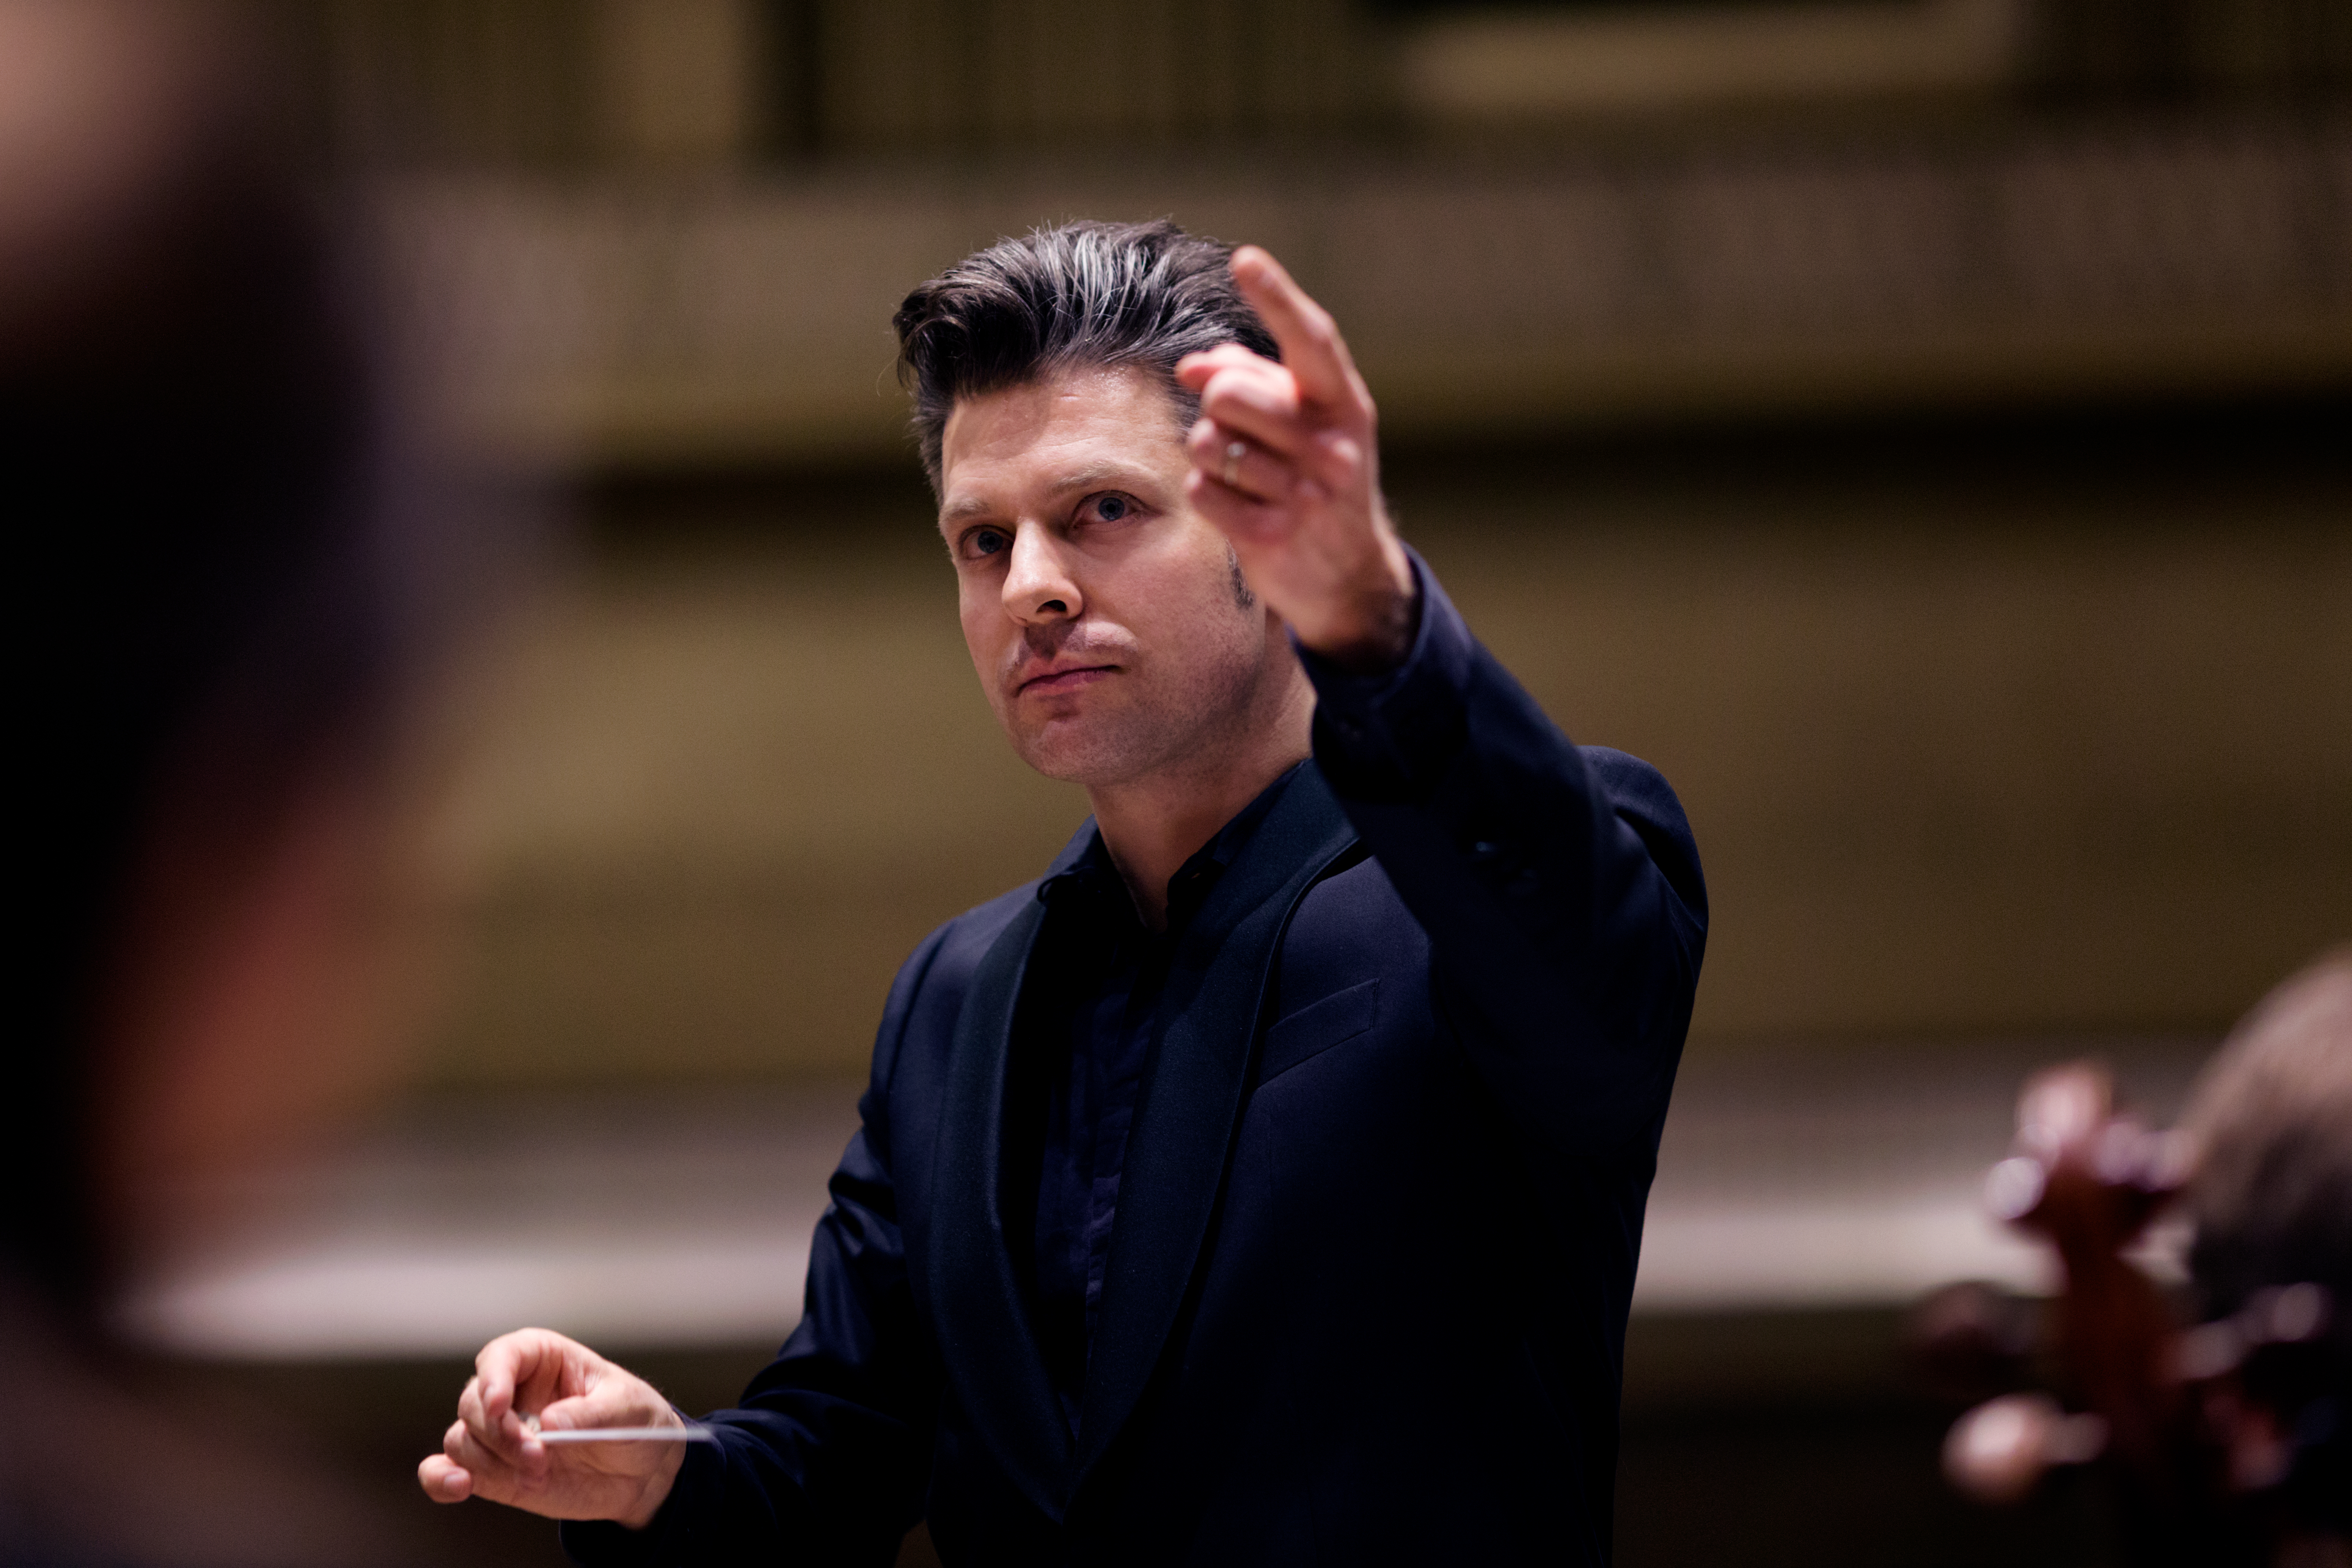 Joseph Bastian debuts with the Bavarian Youth Orchestra 2